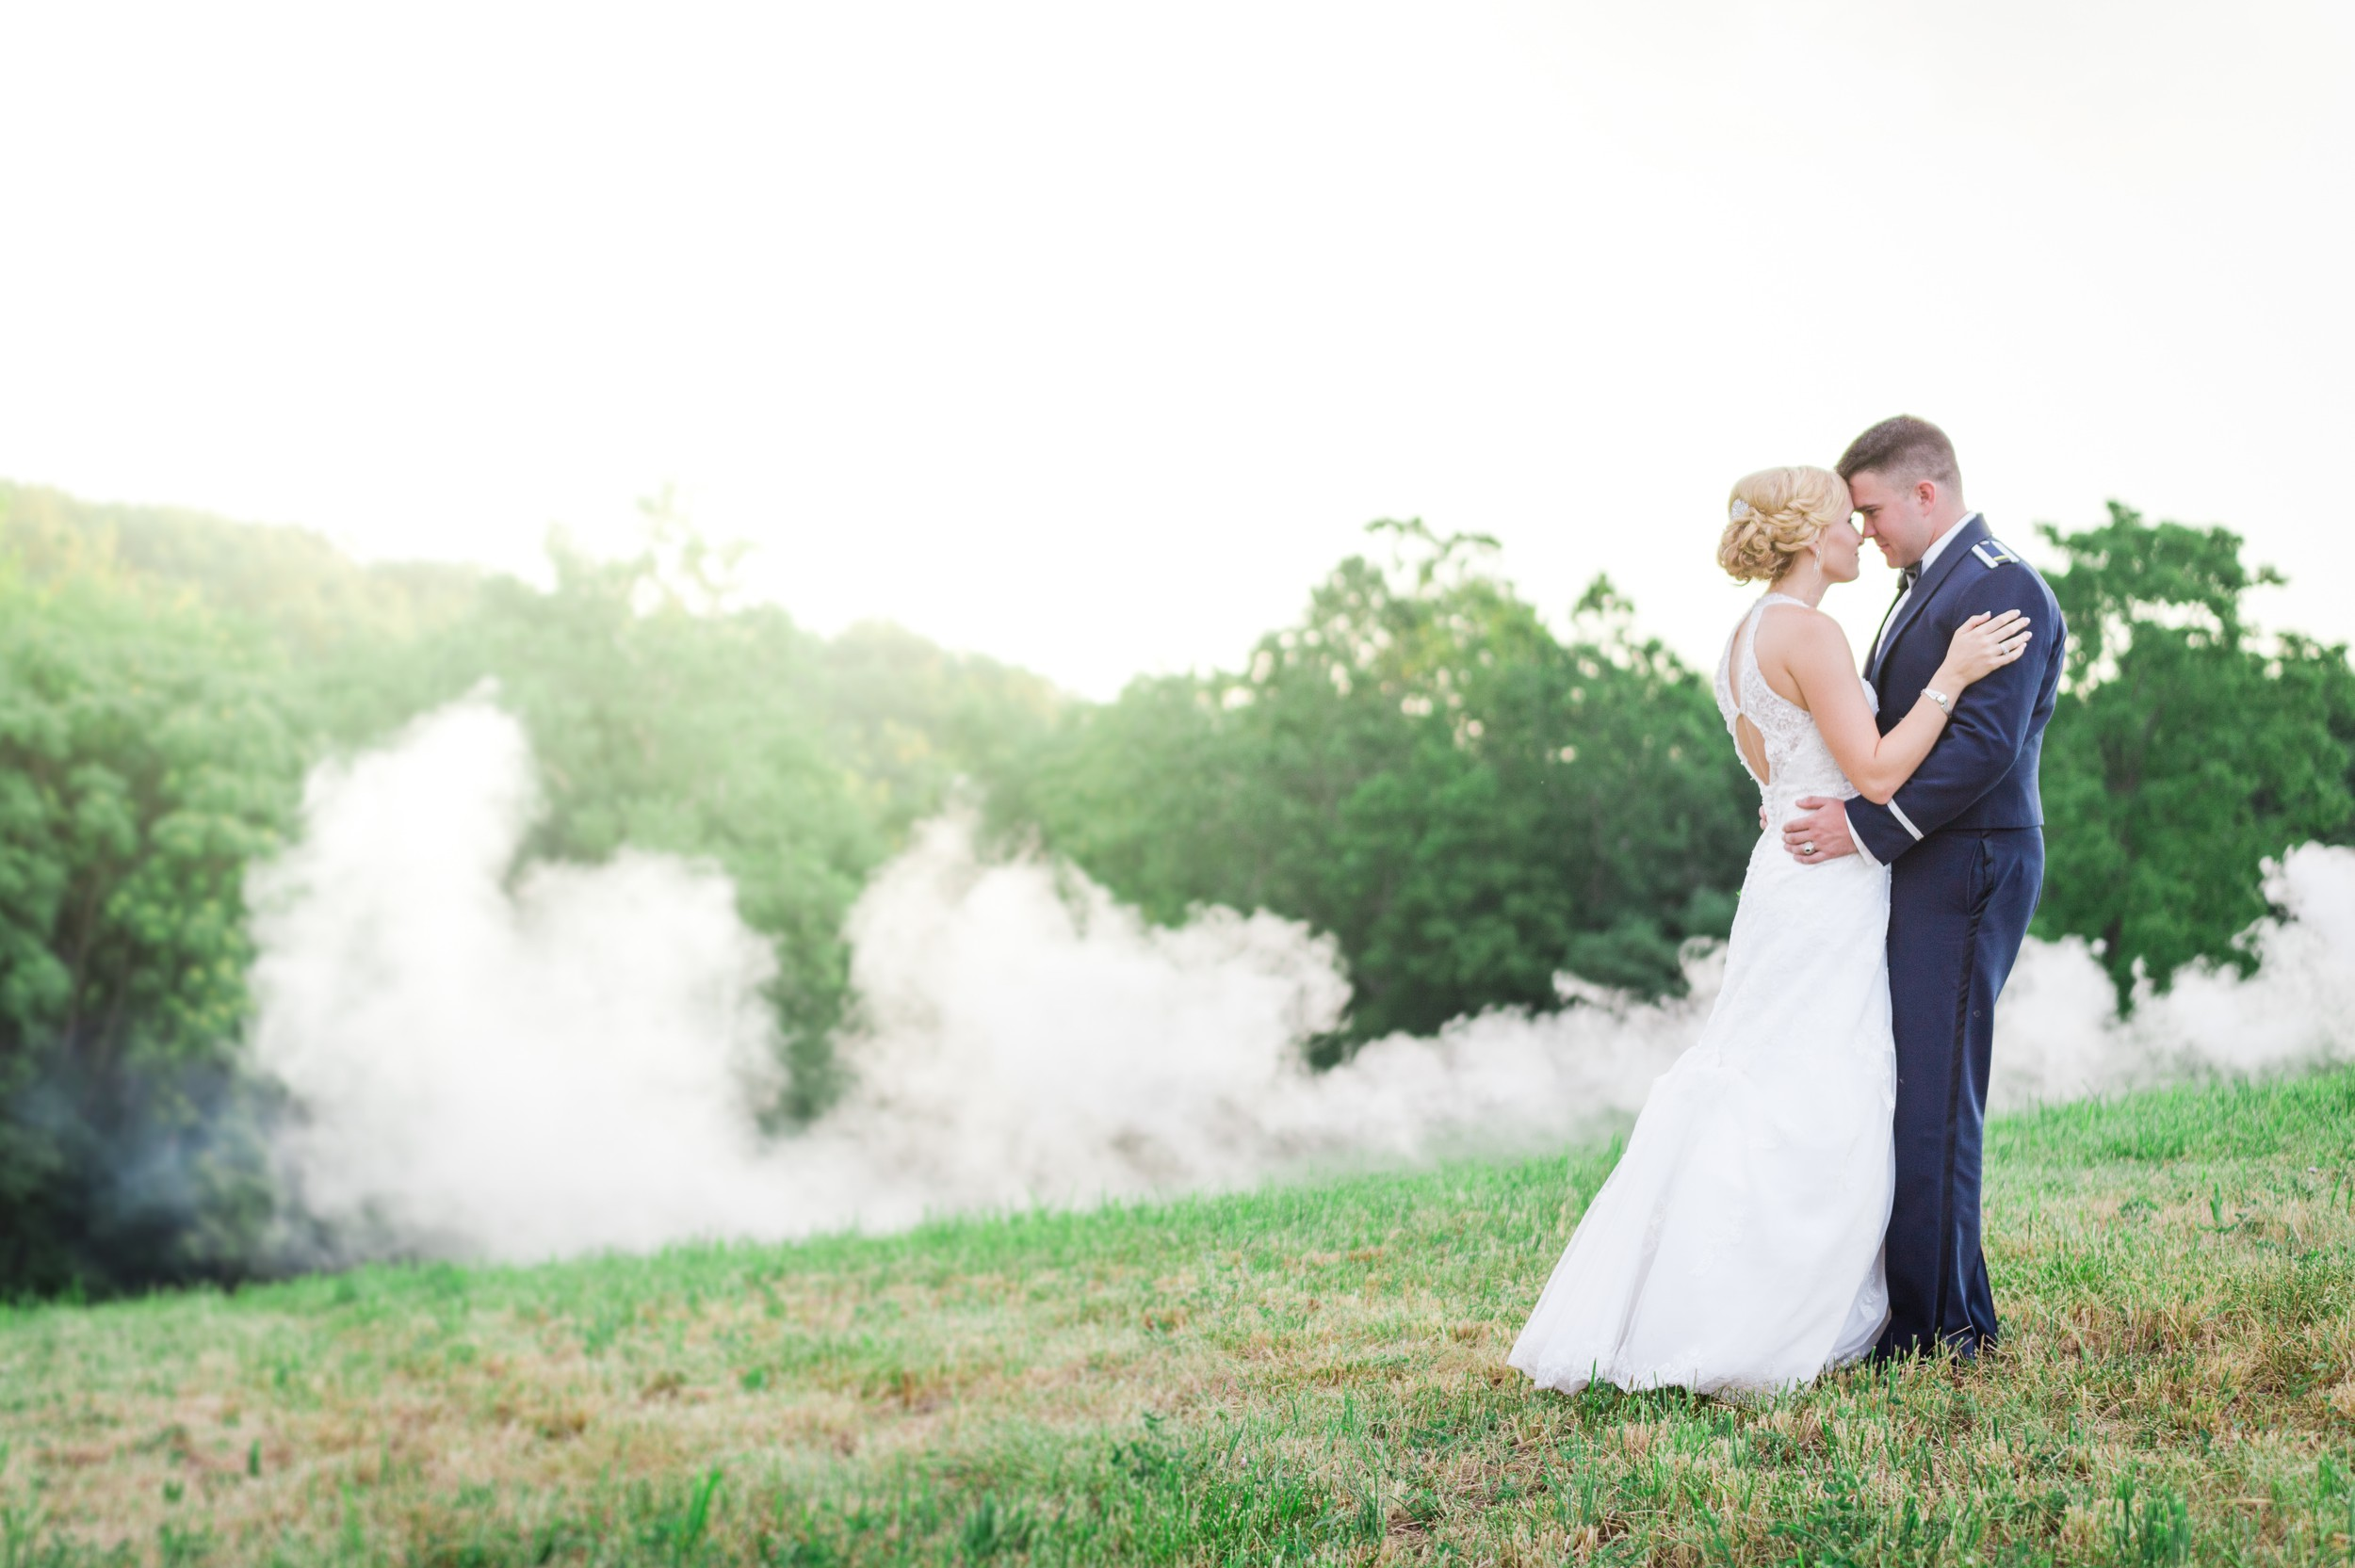 Both the bride and groom are serving in the Air Force and had their Farm Wedding in the heart of Maryland.